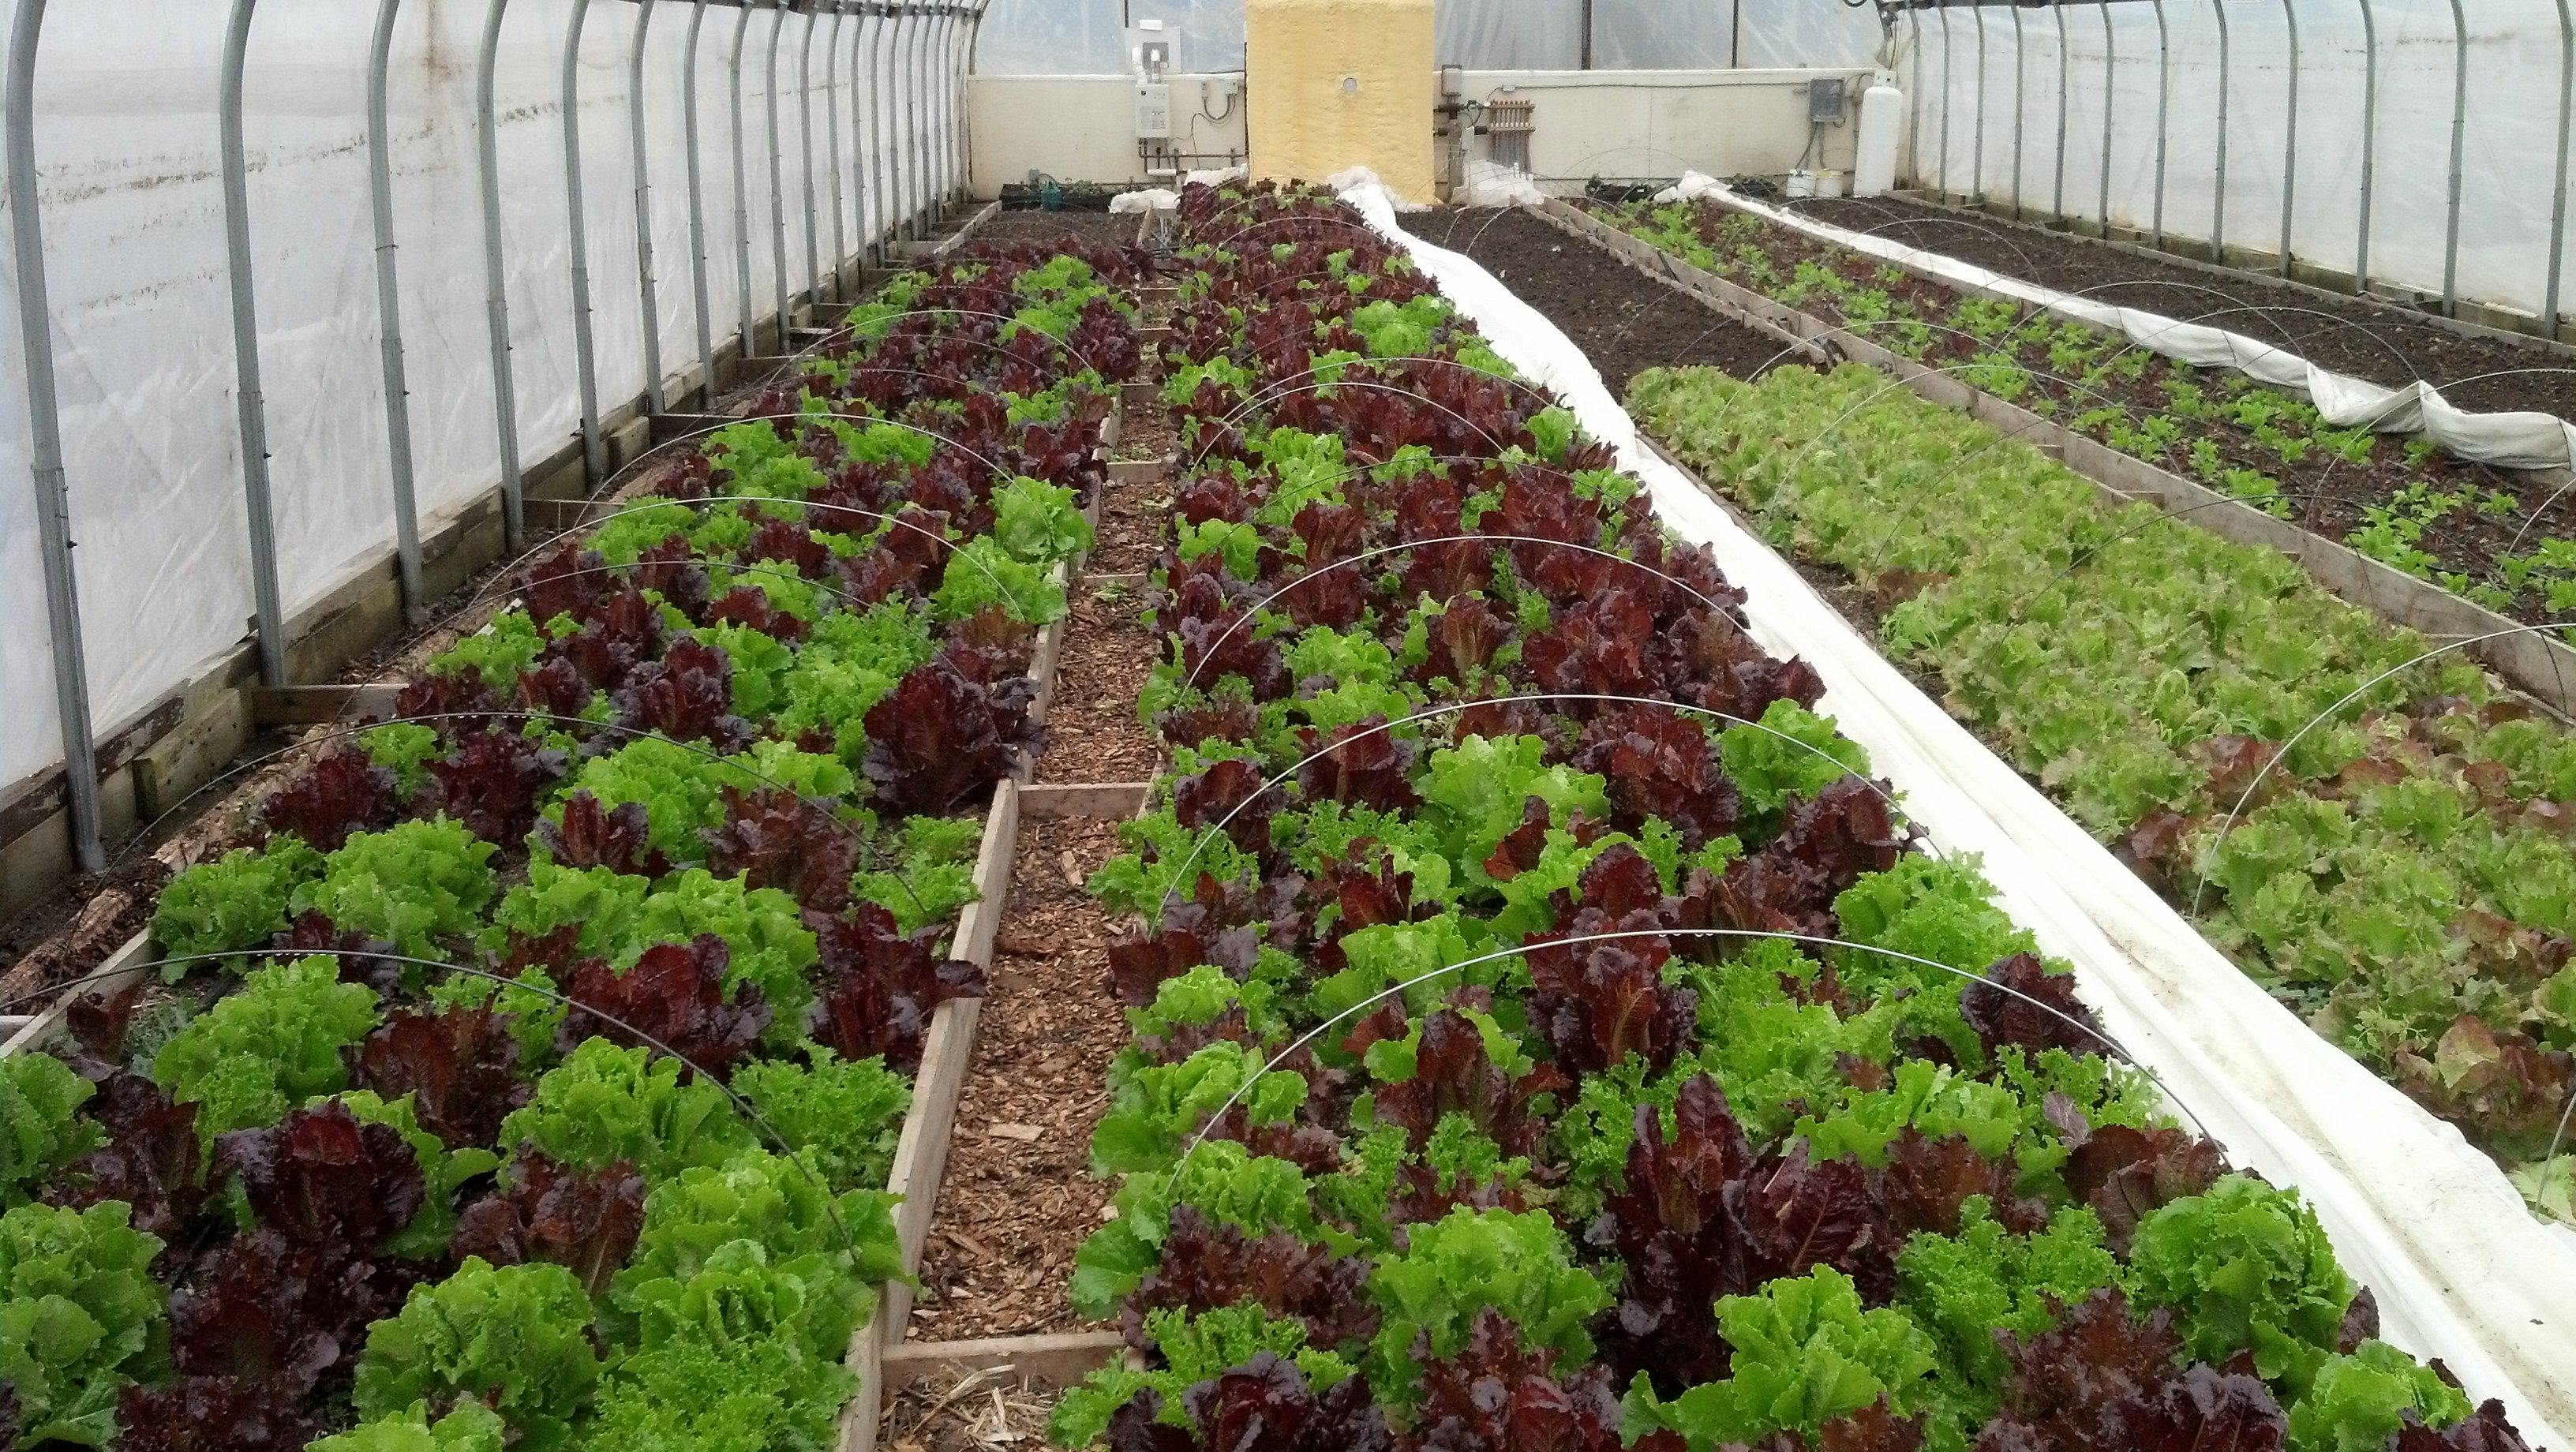 Greenhouse Lettuce Grown Without Fertilizer, Compost ONLY